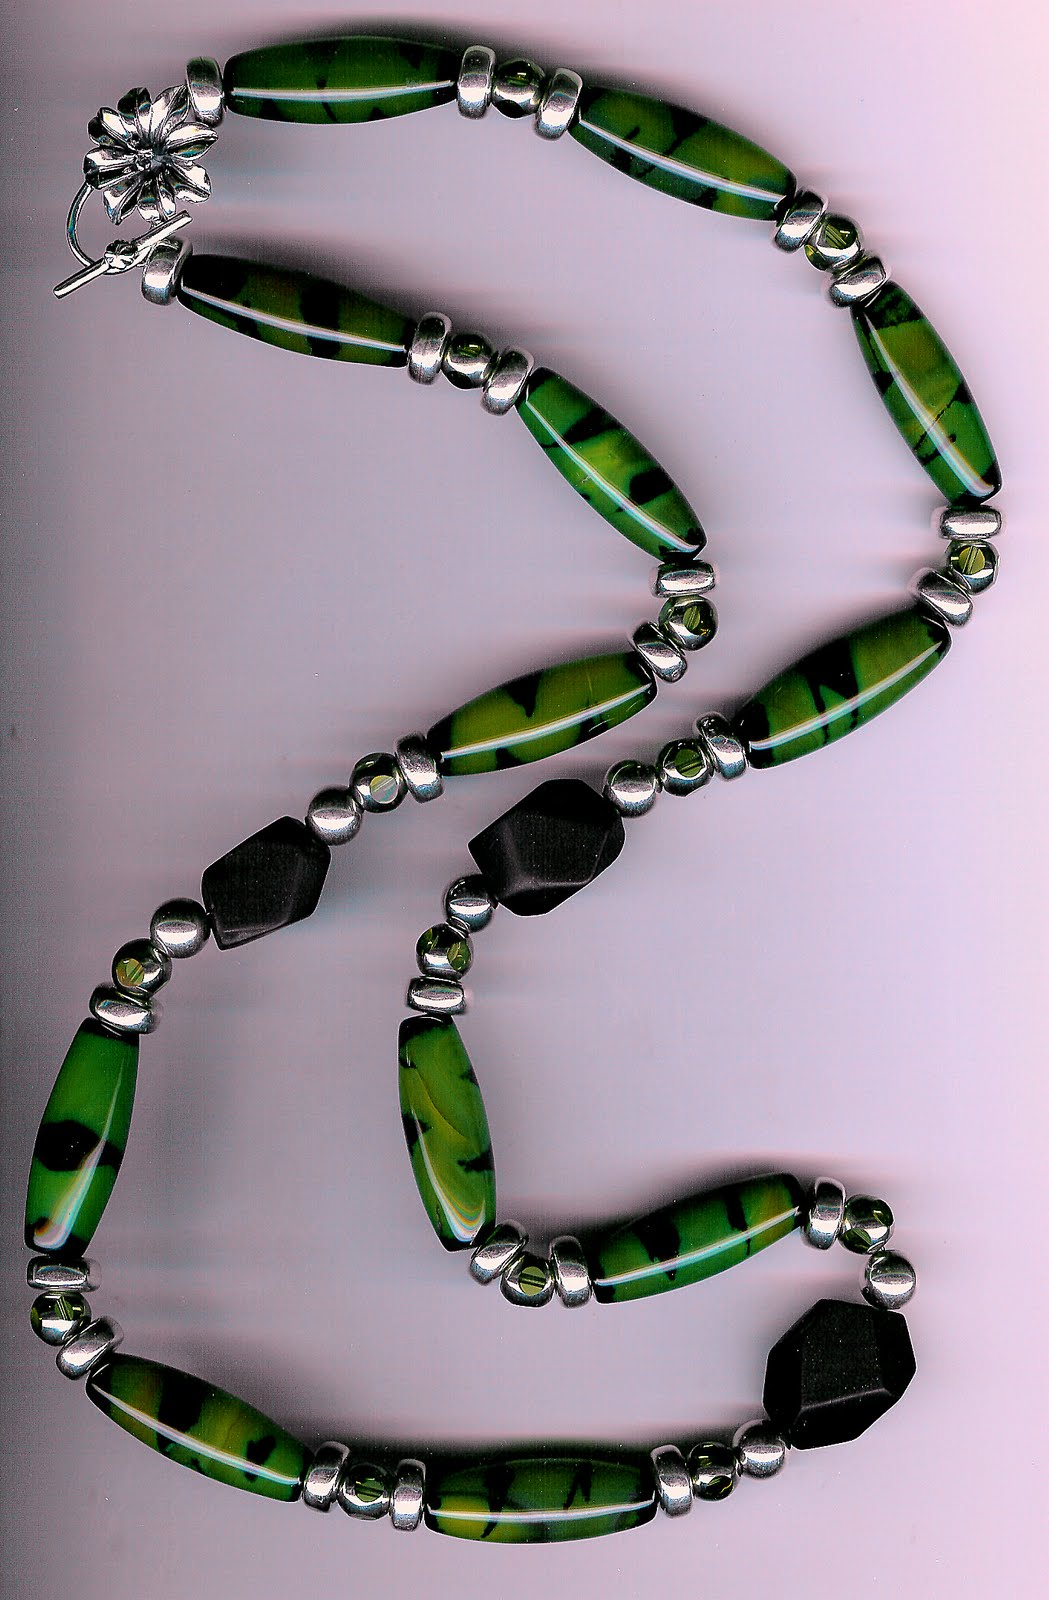 193. Green Agate, Matte Onyx, Olive Crystals with Bali Sterling Silver